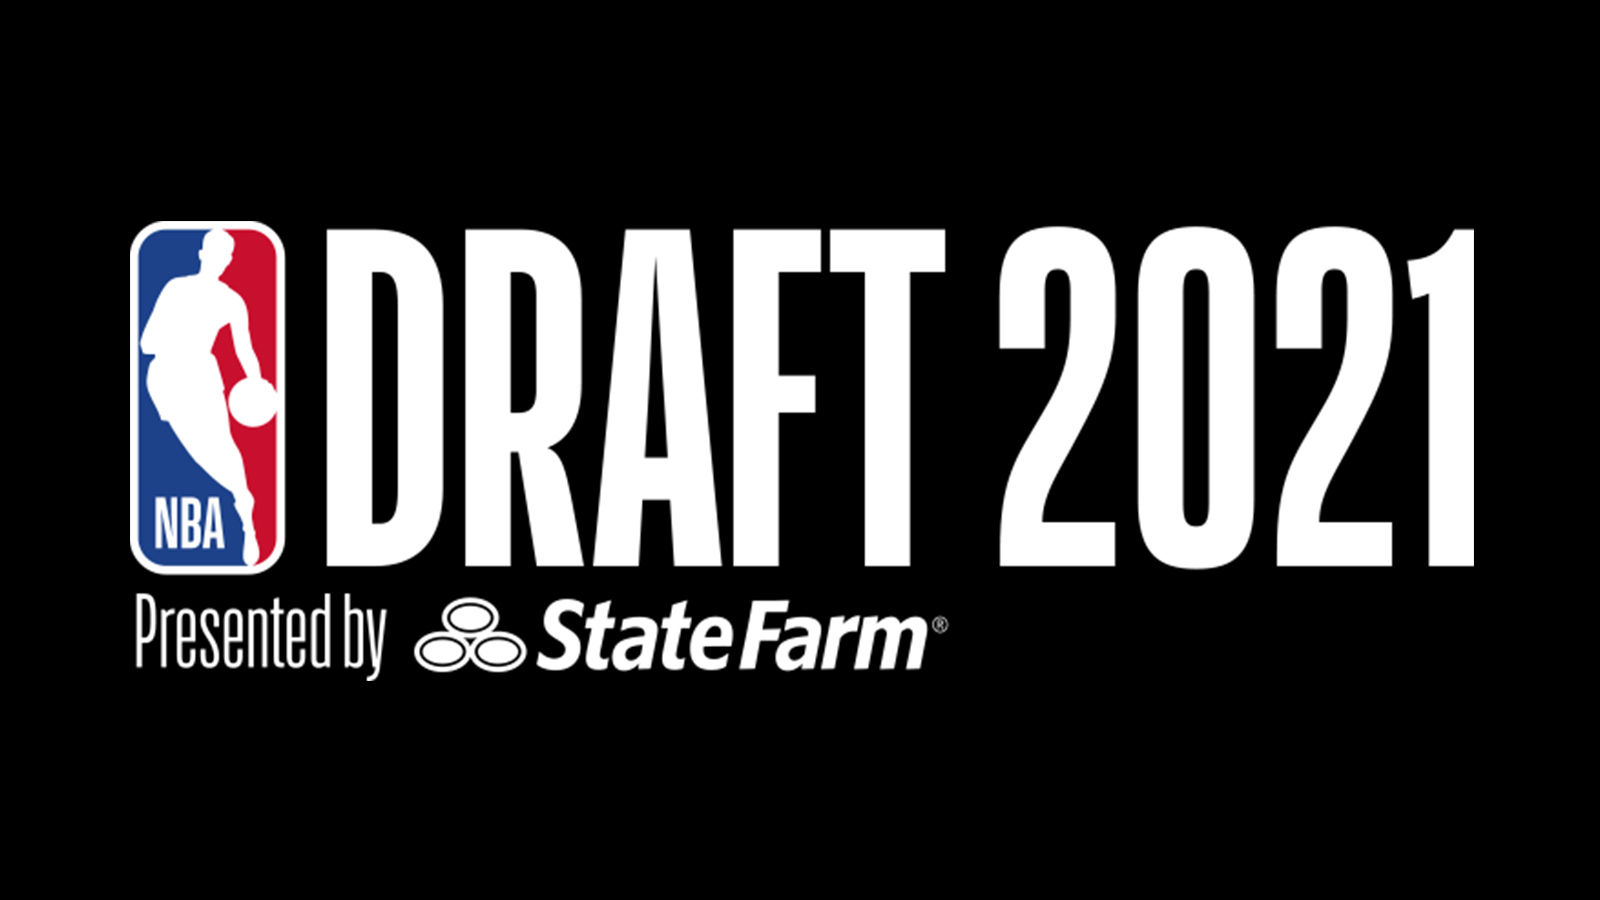 ESPN and ABC to Exclusively Televise the 2021 NBA Draft presented by State  Farm Thursday, July 29, at 8 p.m. ET - ESPN Press Room U.S.